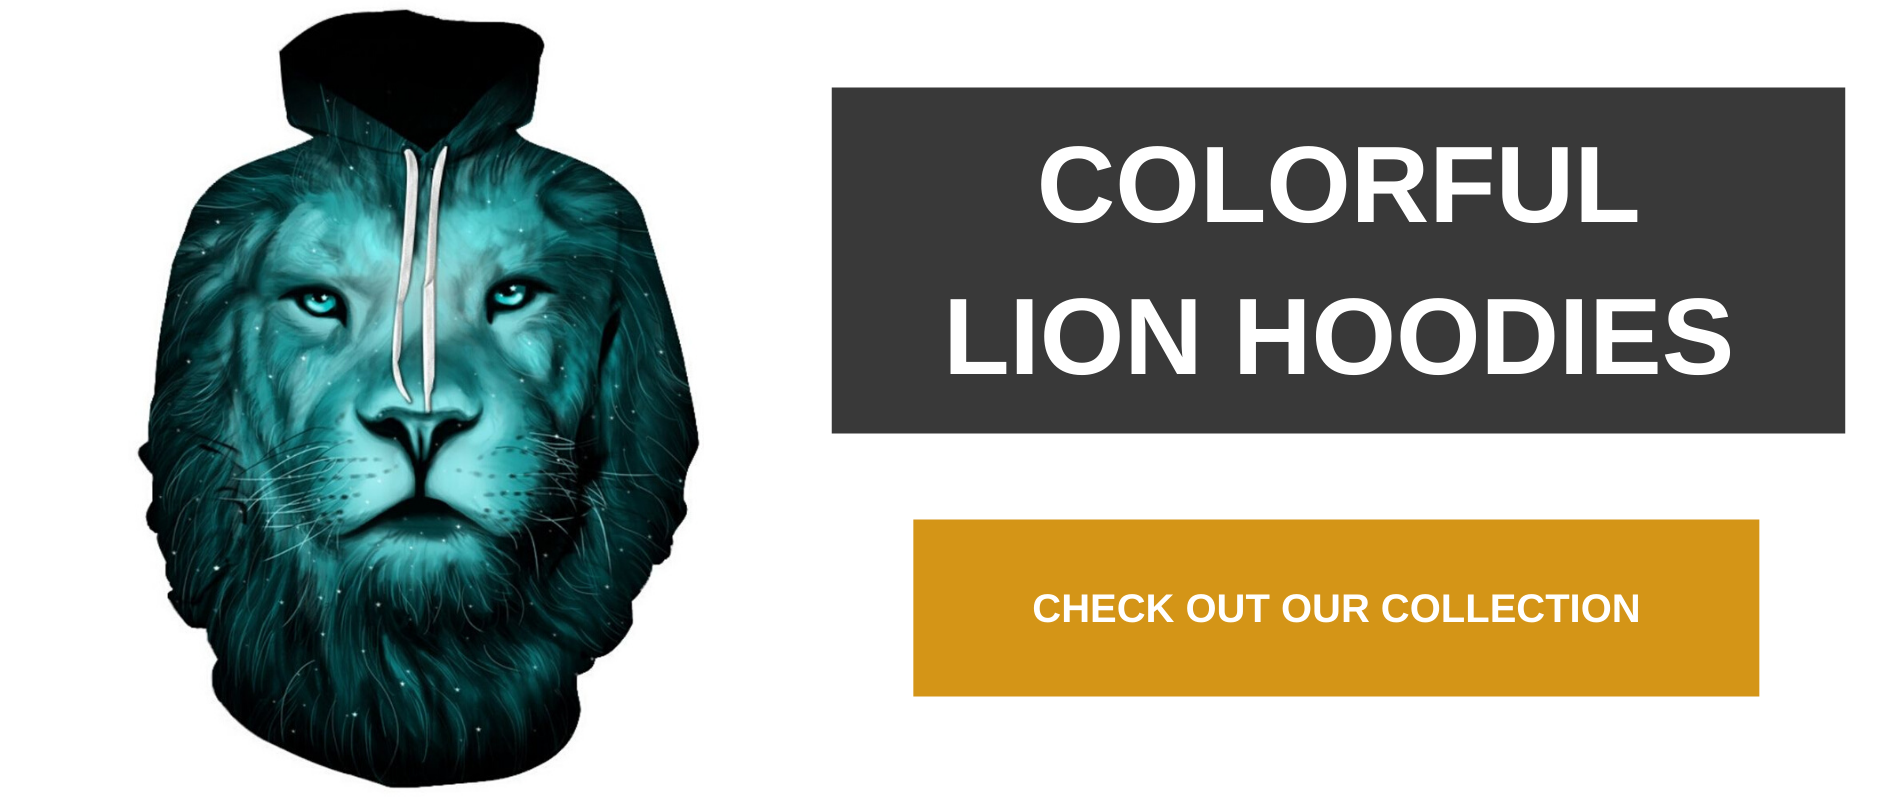 Colorful lion hoodies.